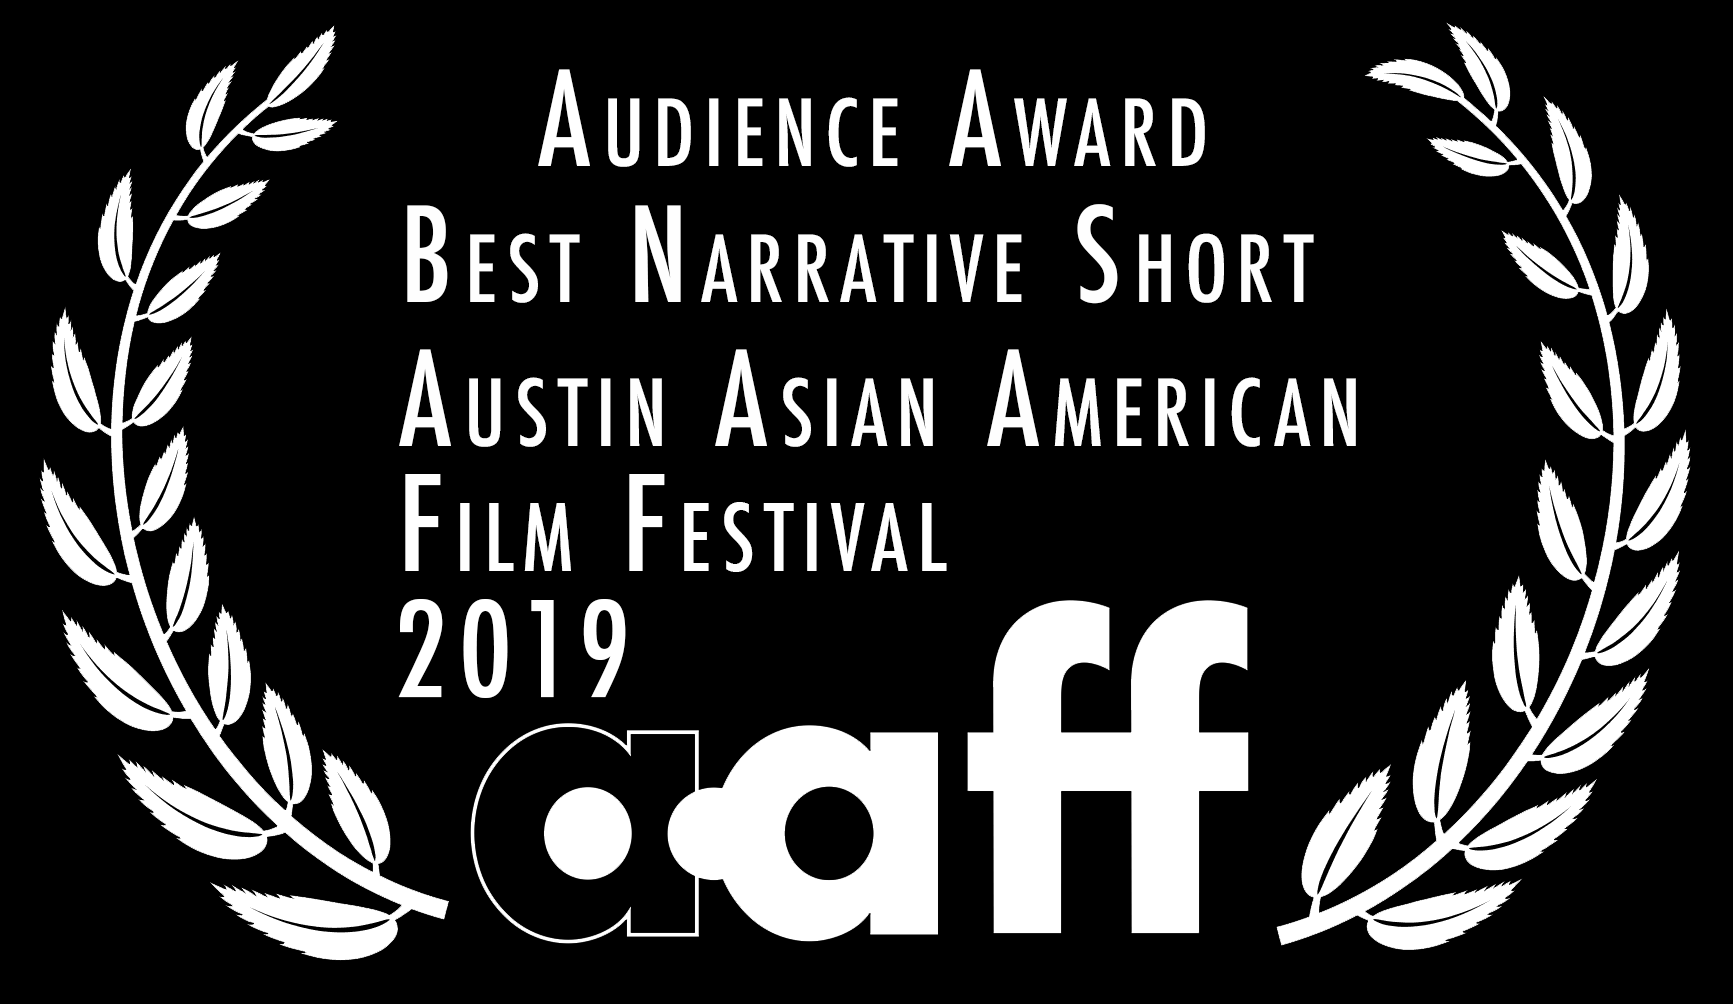 aaaff_2019_audience_narrative_short.png